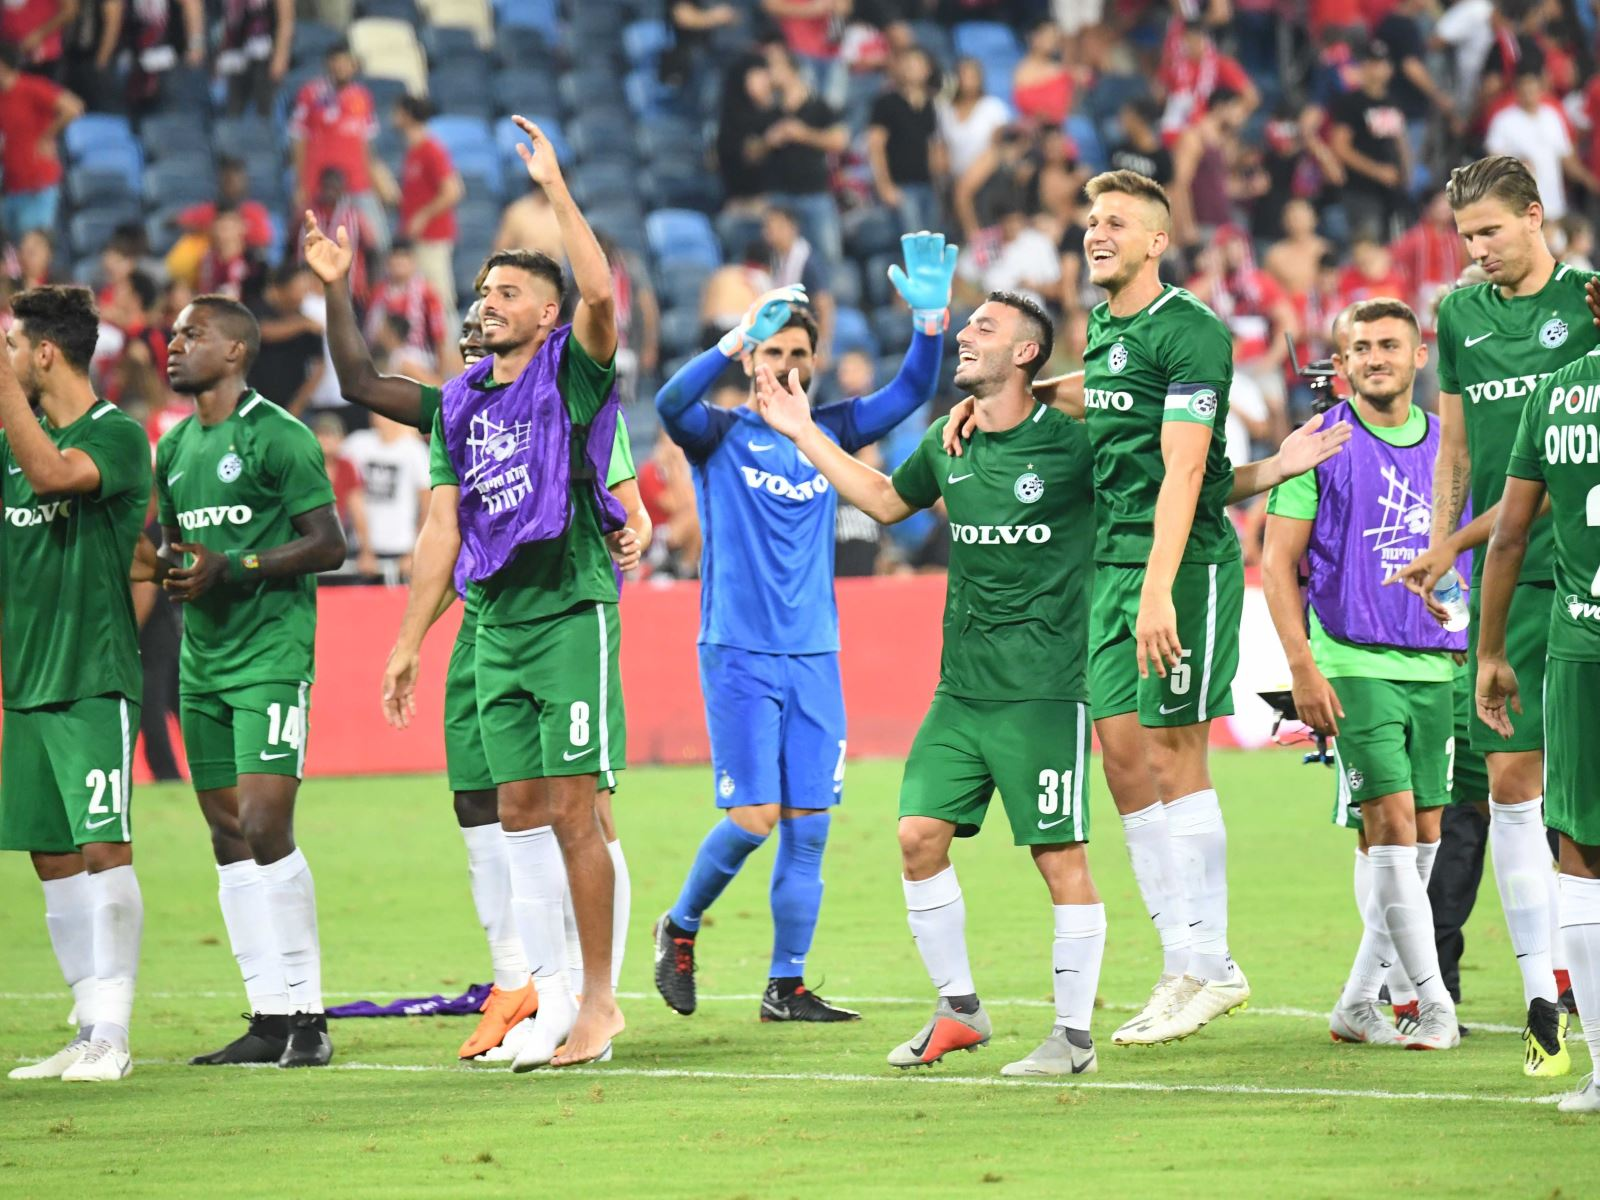 Maccabi won Hapoel in Haifa's derby